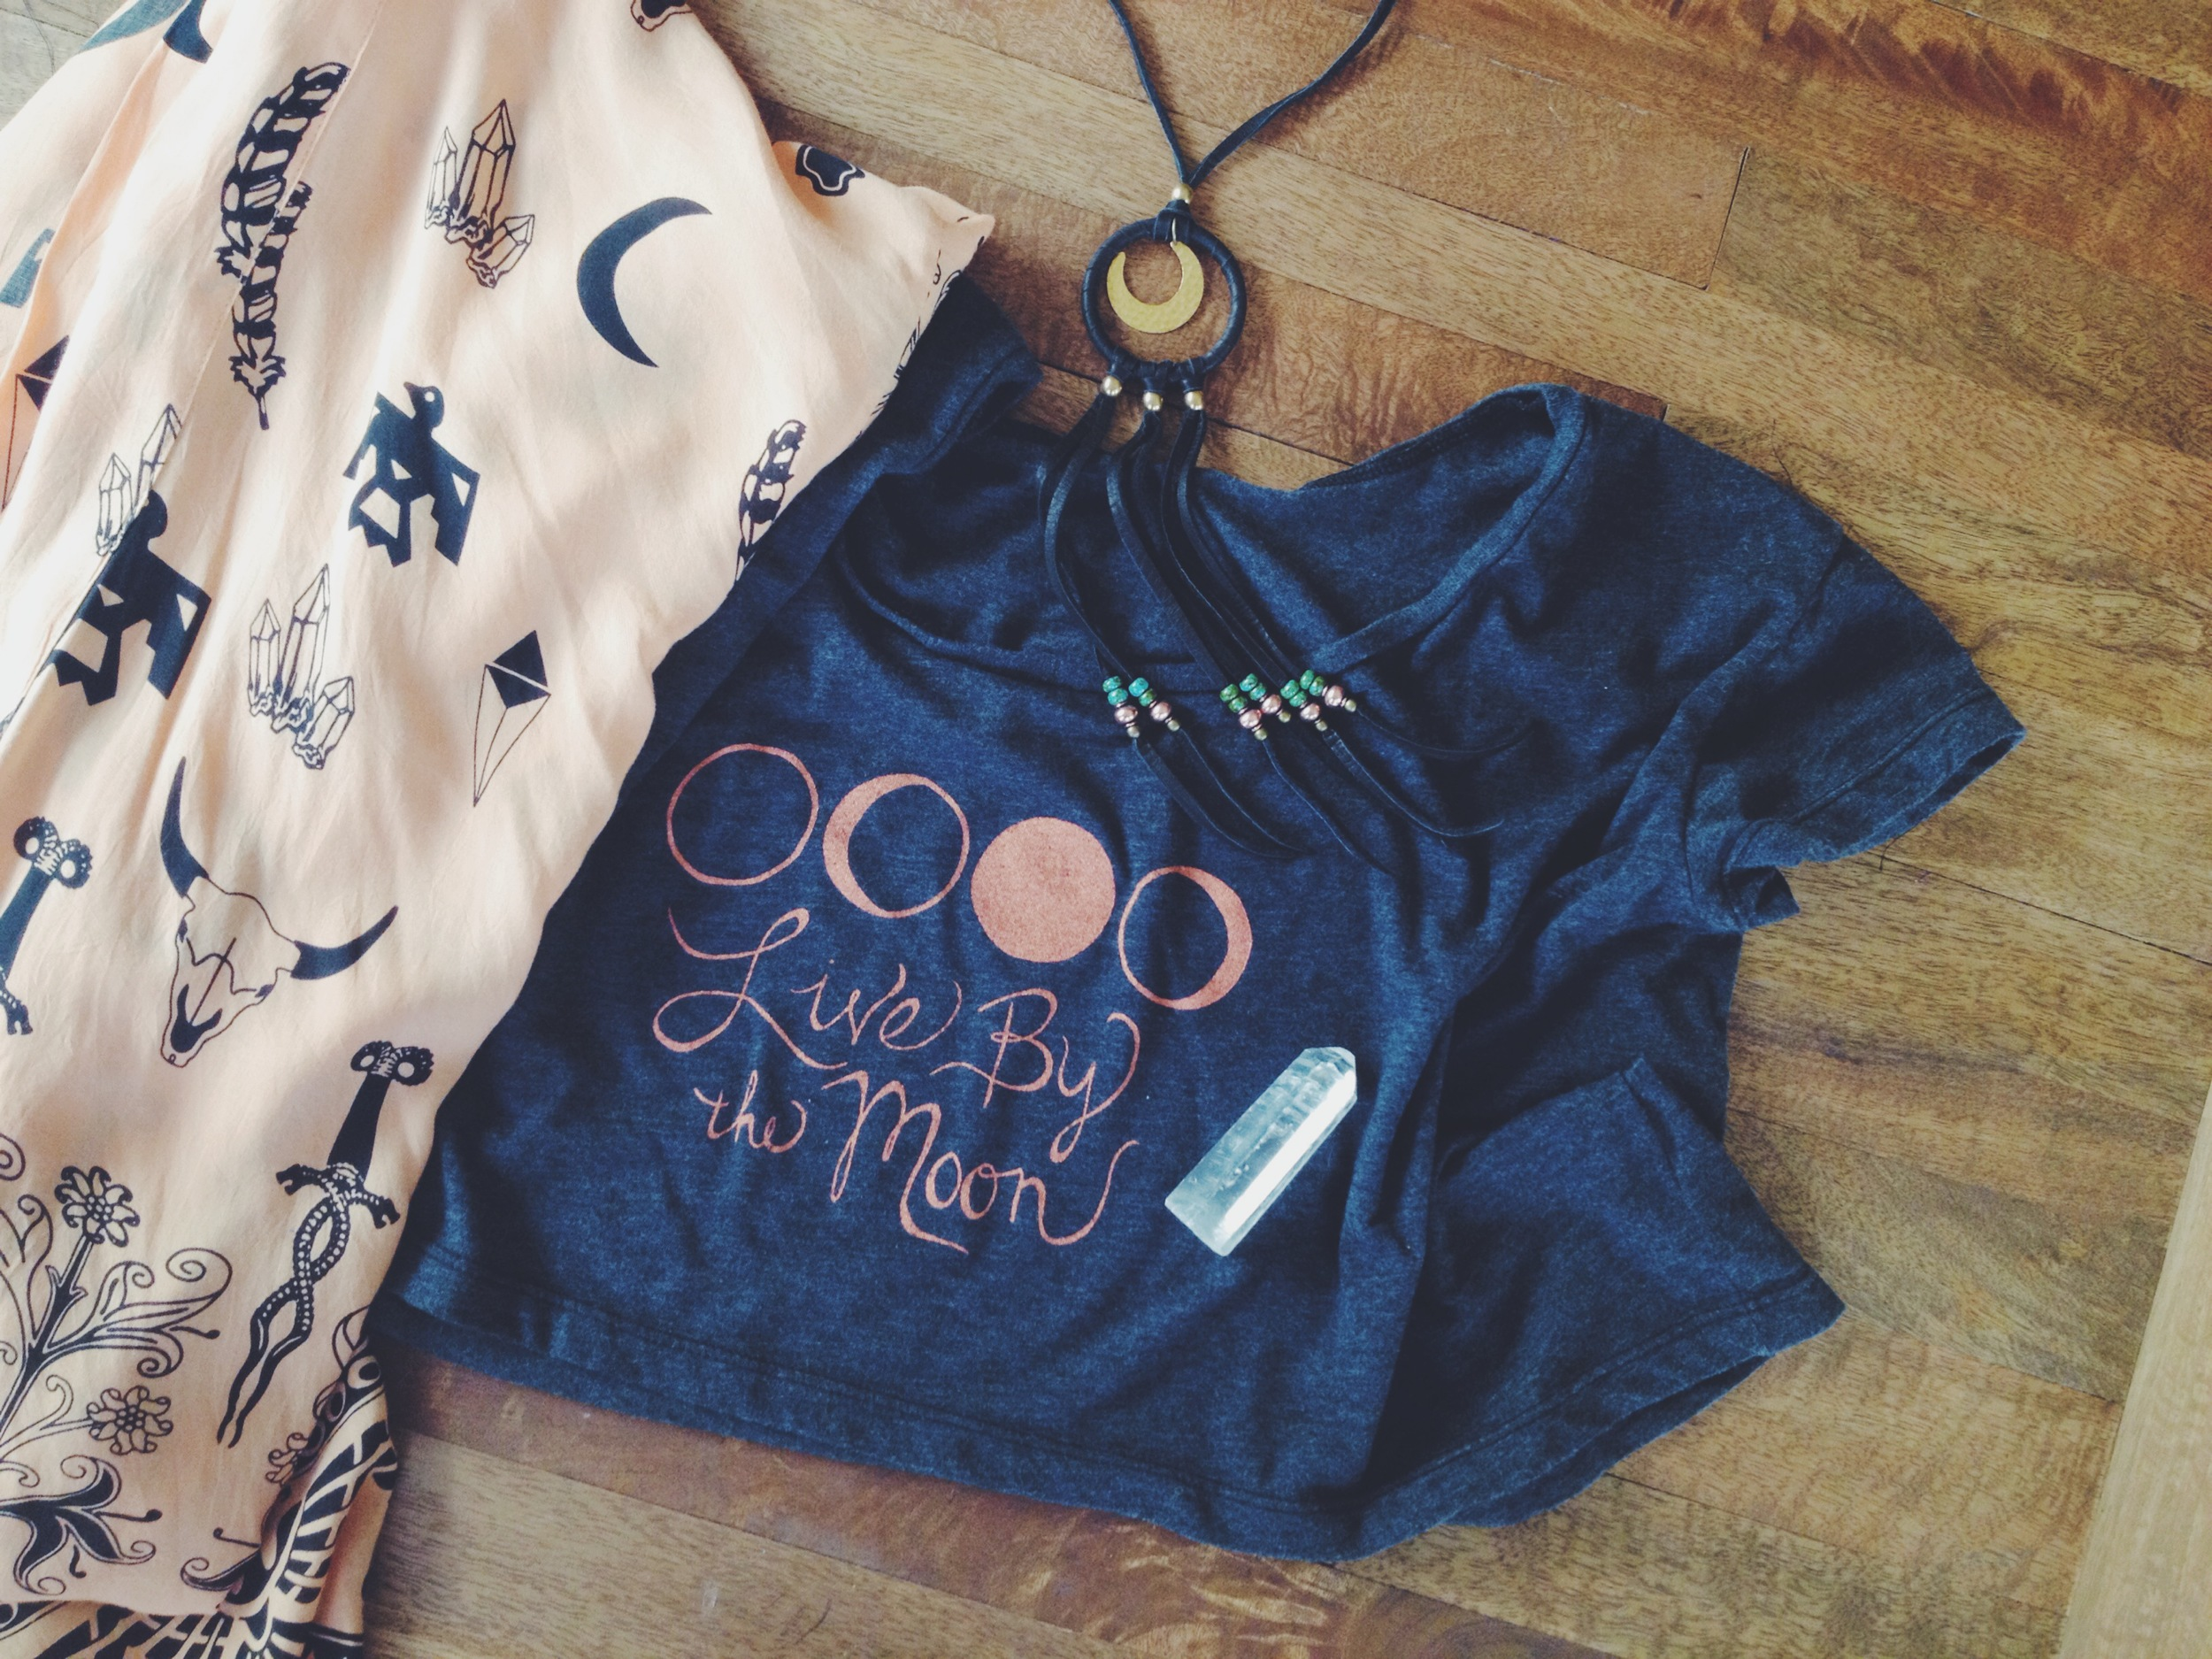 We printed a fresh batch of Skyline Fever  moon phase crop tops .